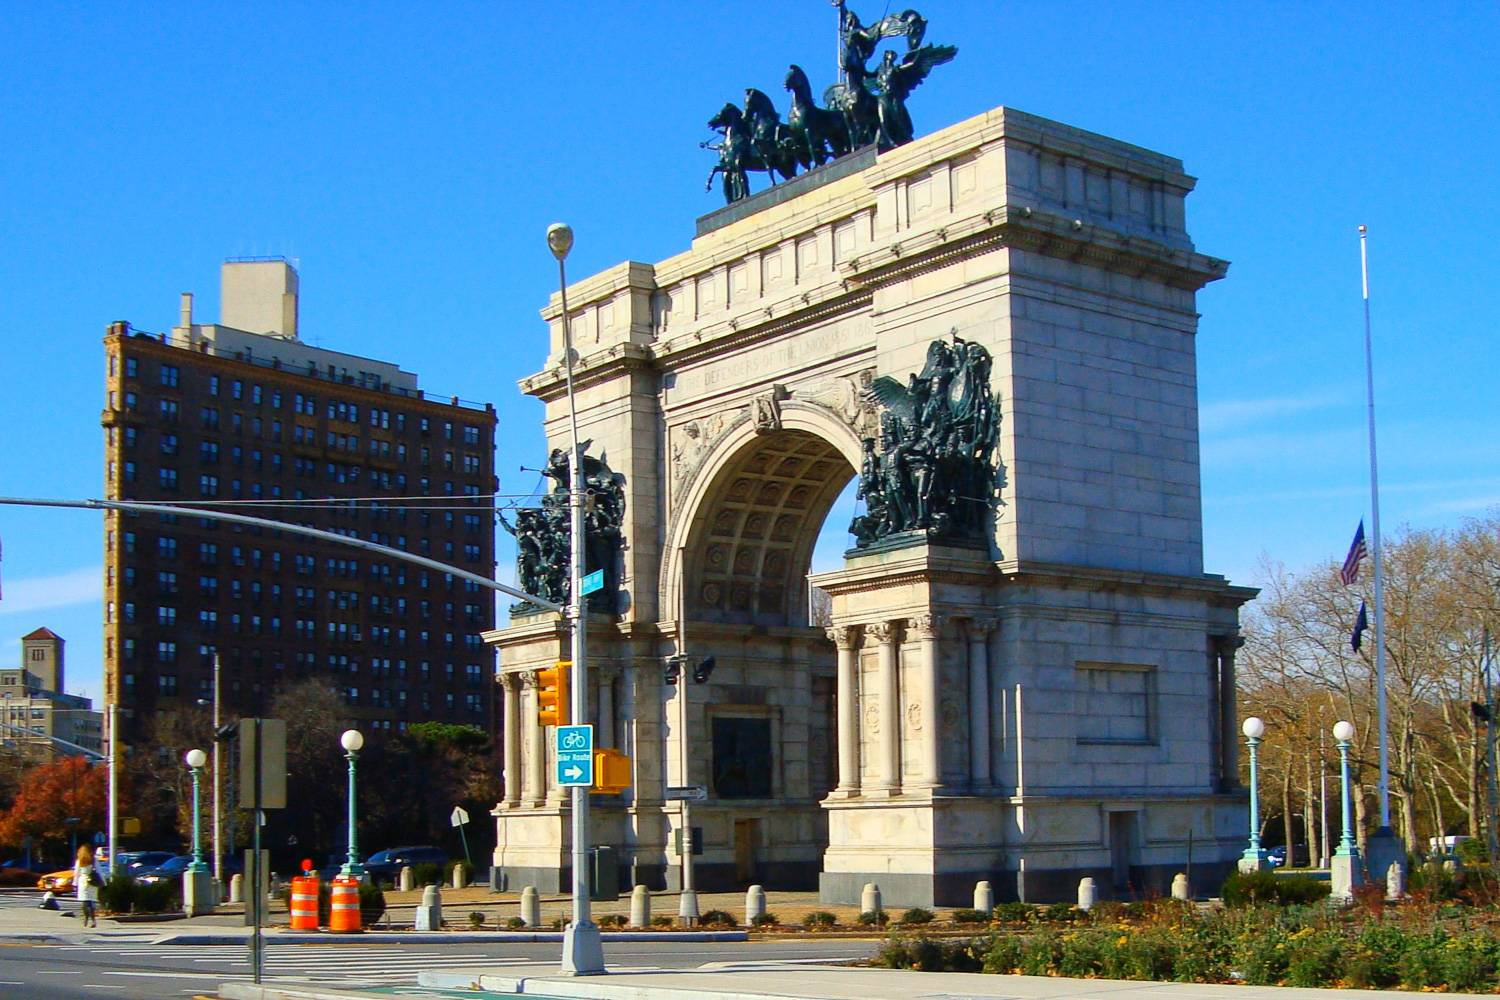 Image of Grand Army Plaza in Prospect Park during the day.